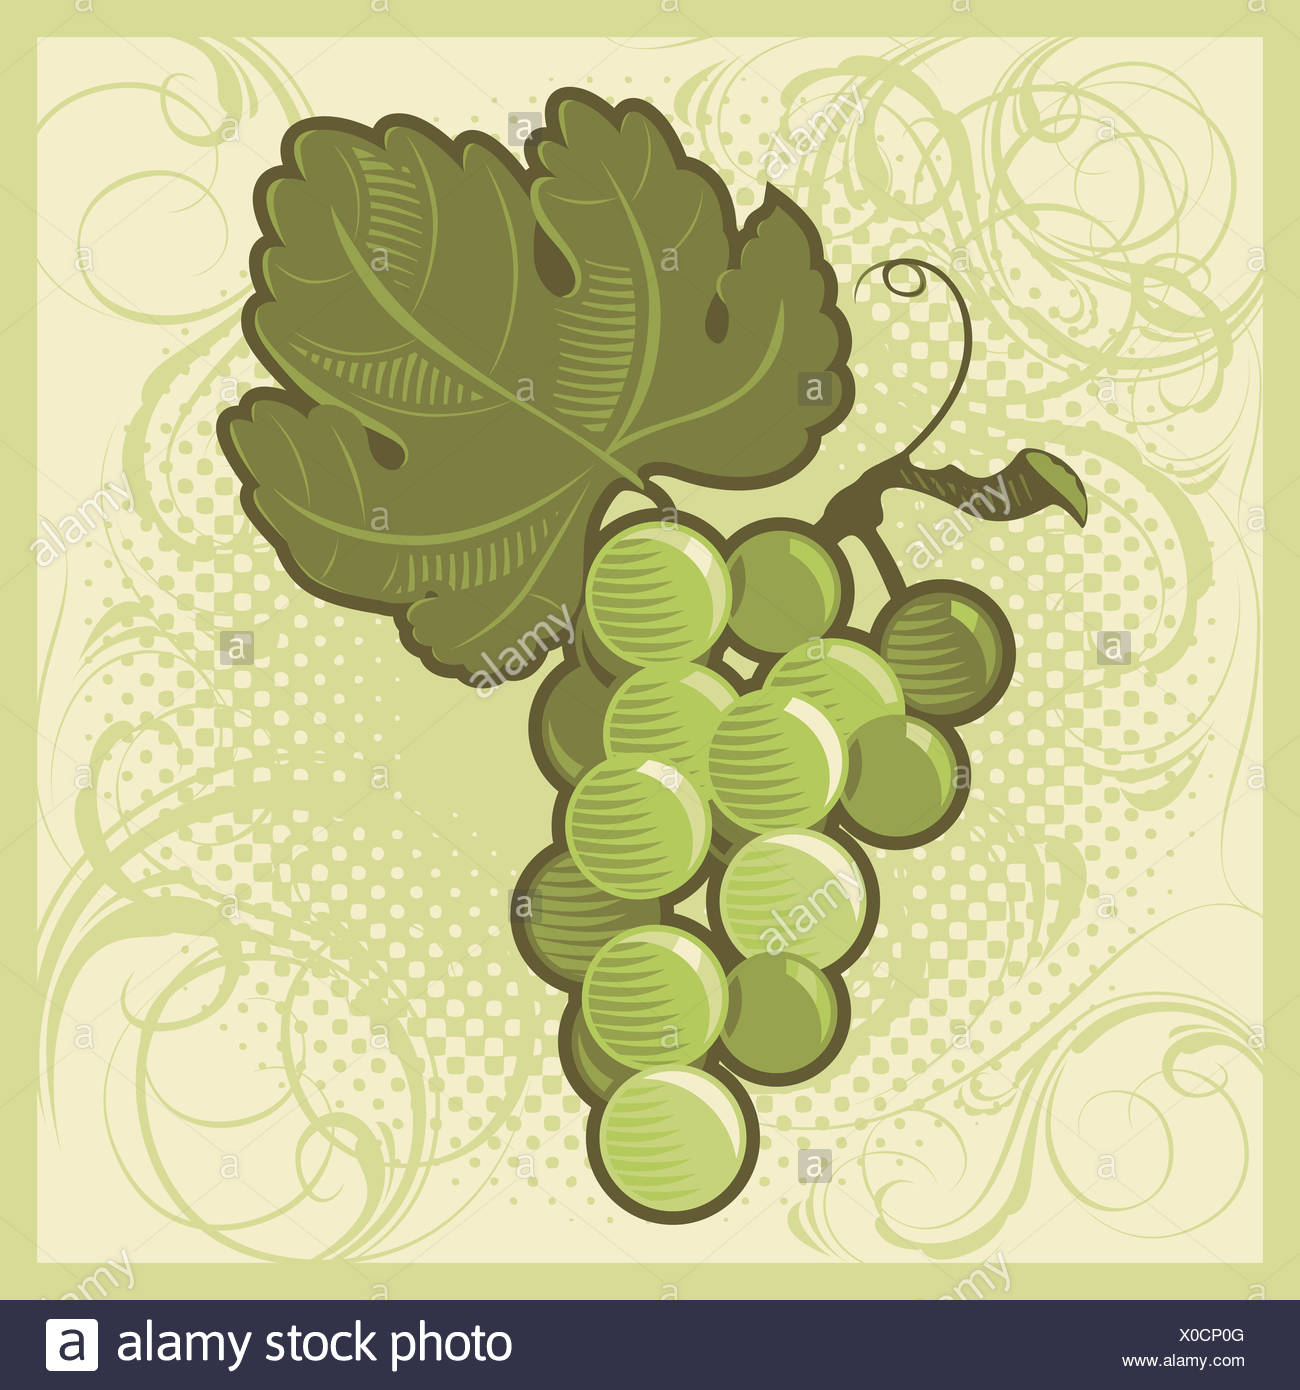 Retro-styled green grape bunch - Stock Image